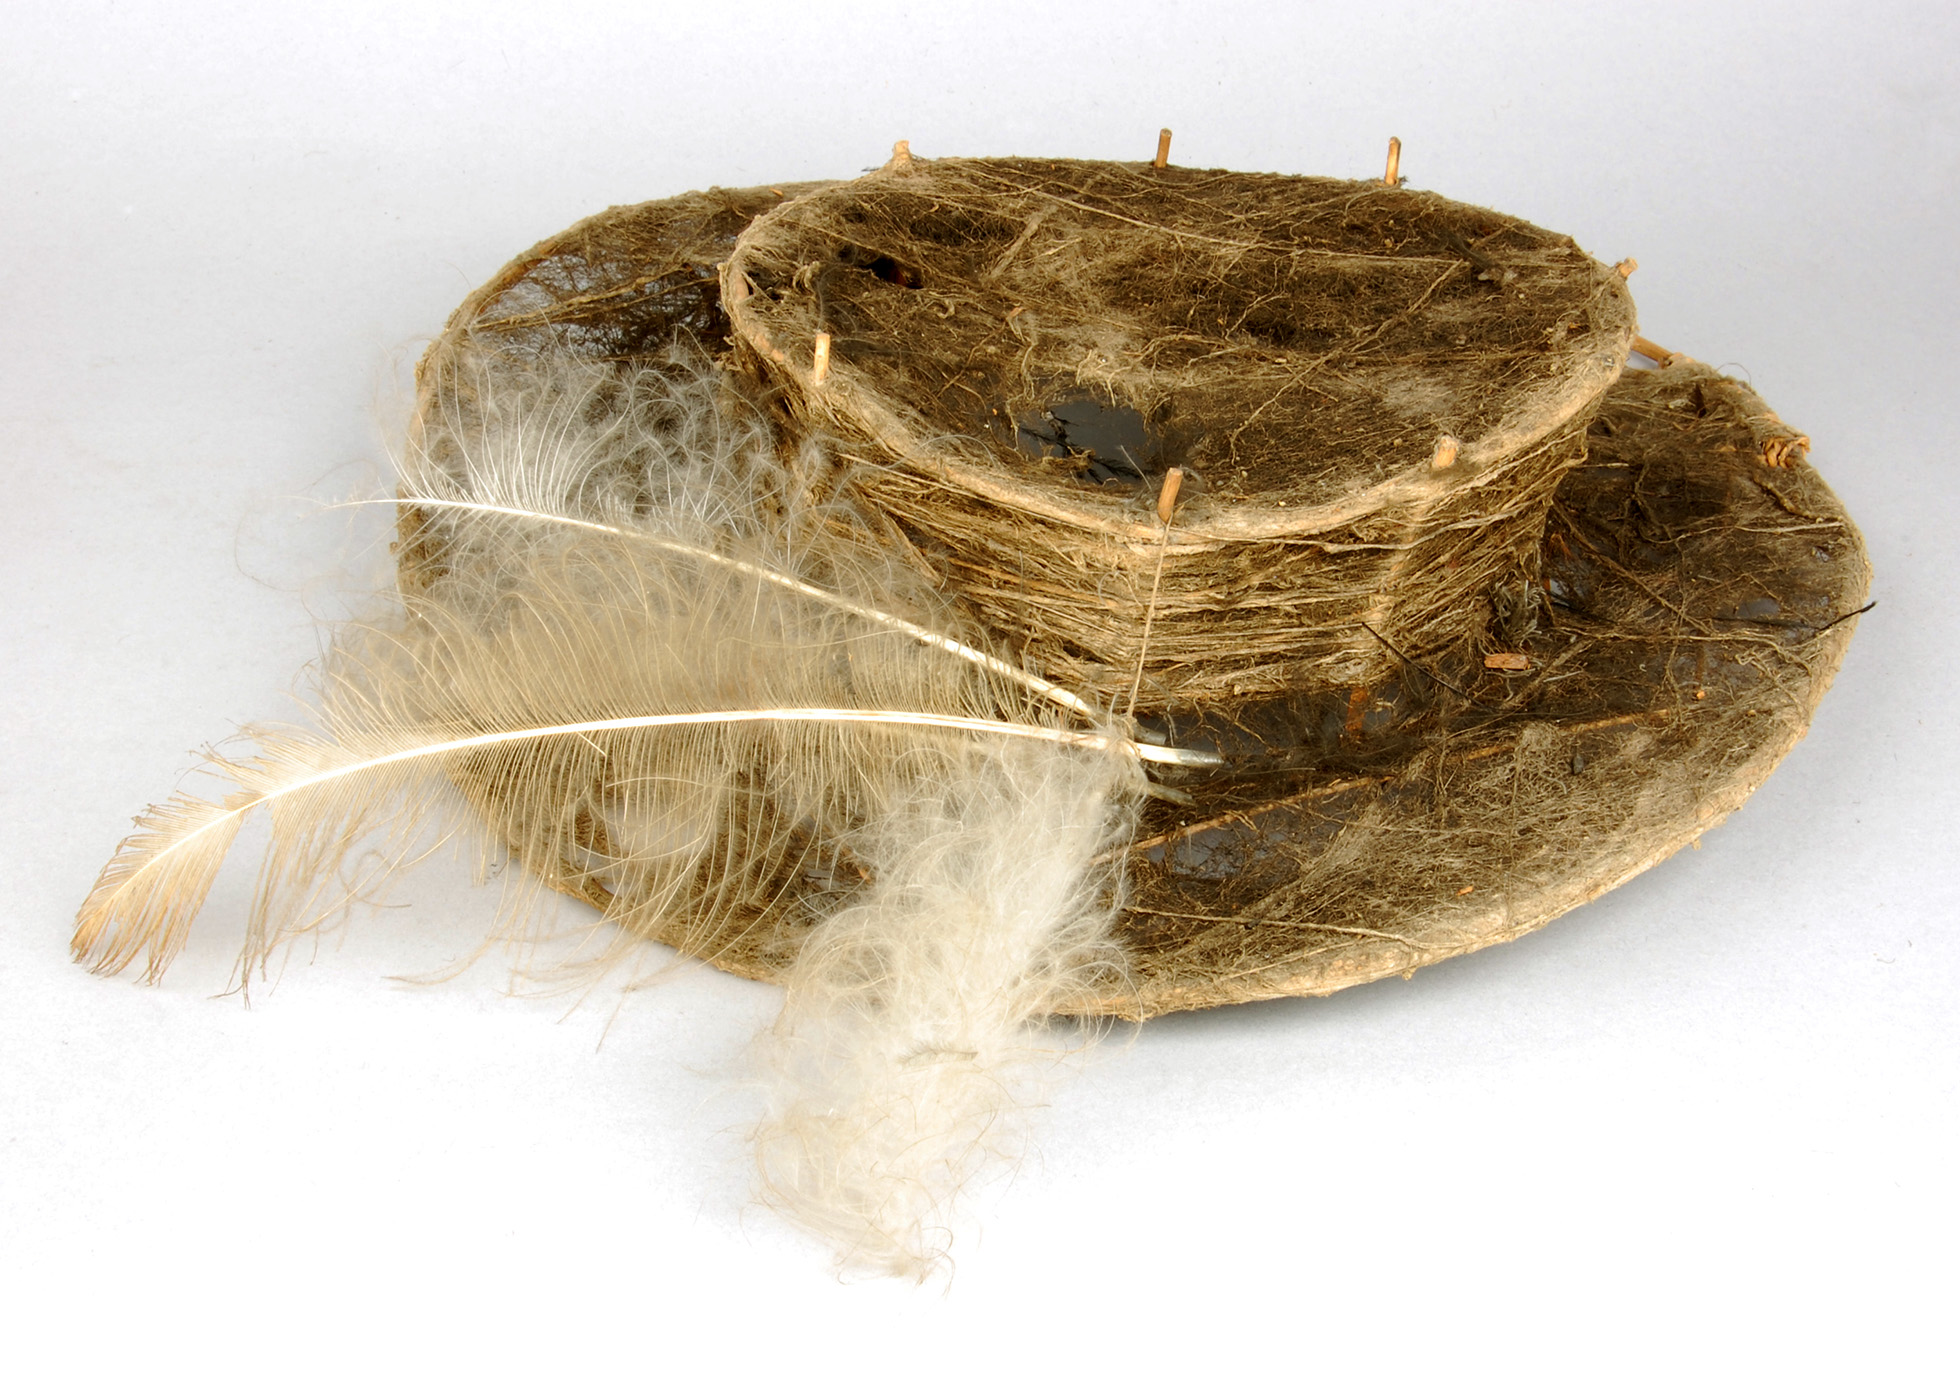 Image of hat made from mixture of organic materials.